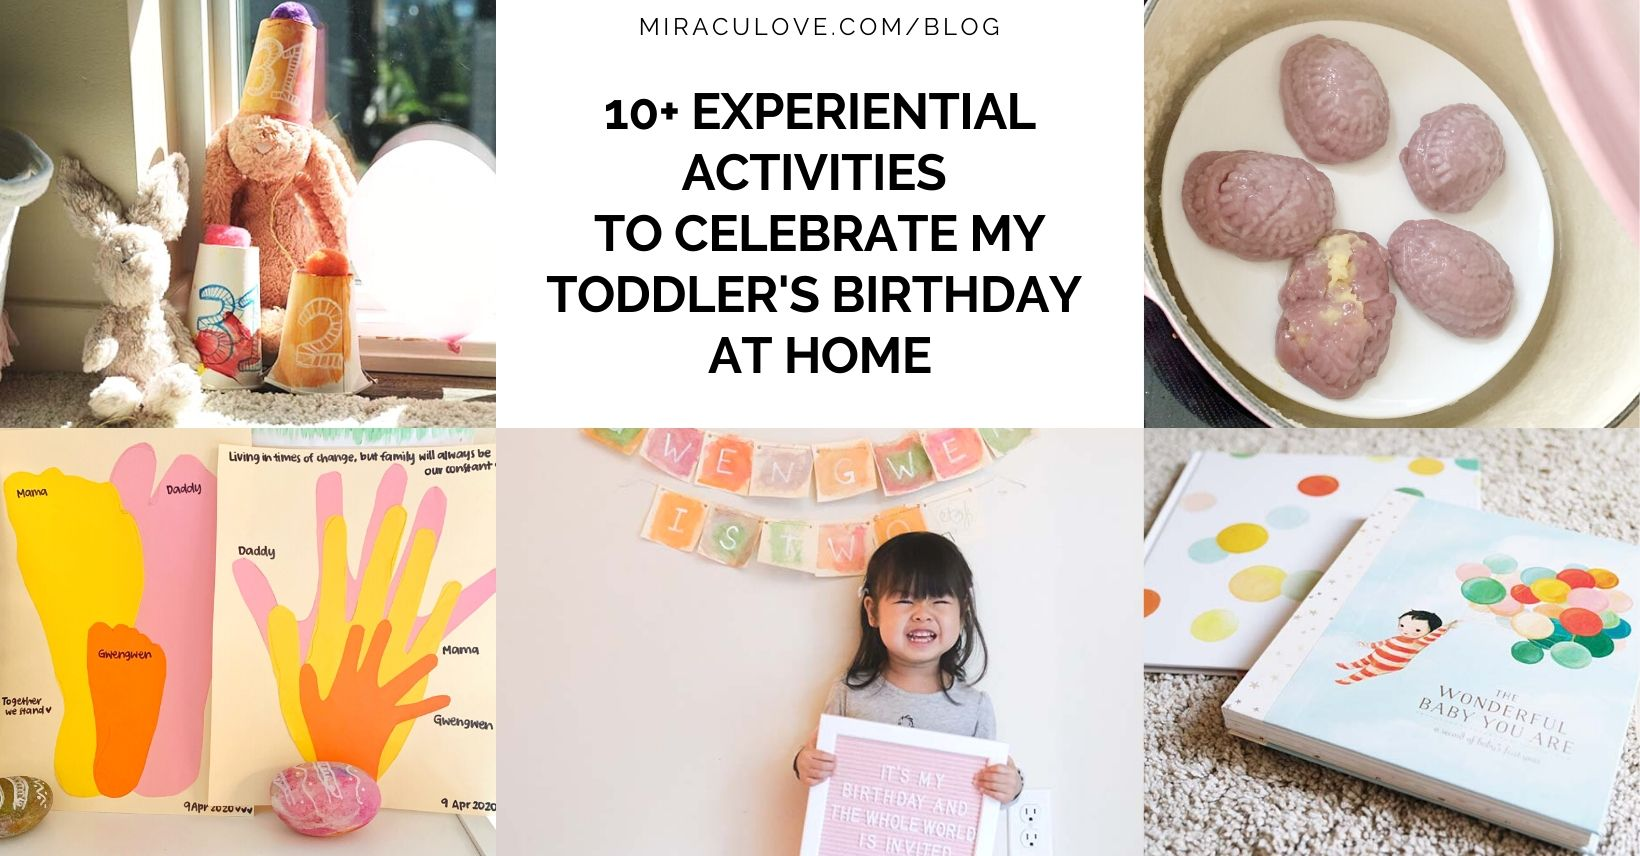 10+ Experiential Activities to Celebrate My Toddler's Birthday at Home